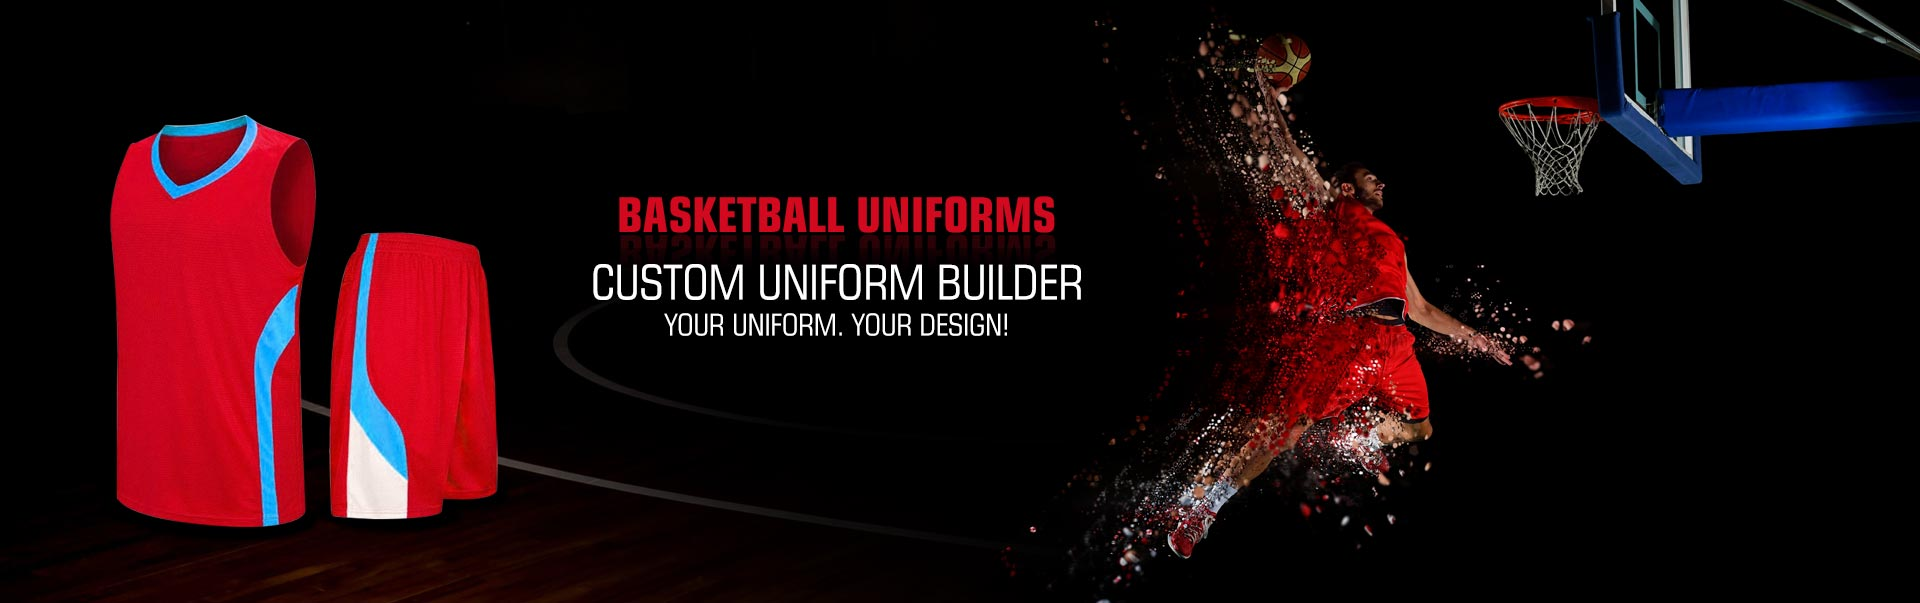 Basketball Uniforms Wholesaler, Suppliers in Oxford